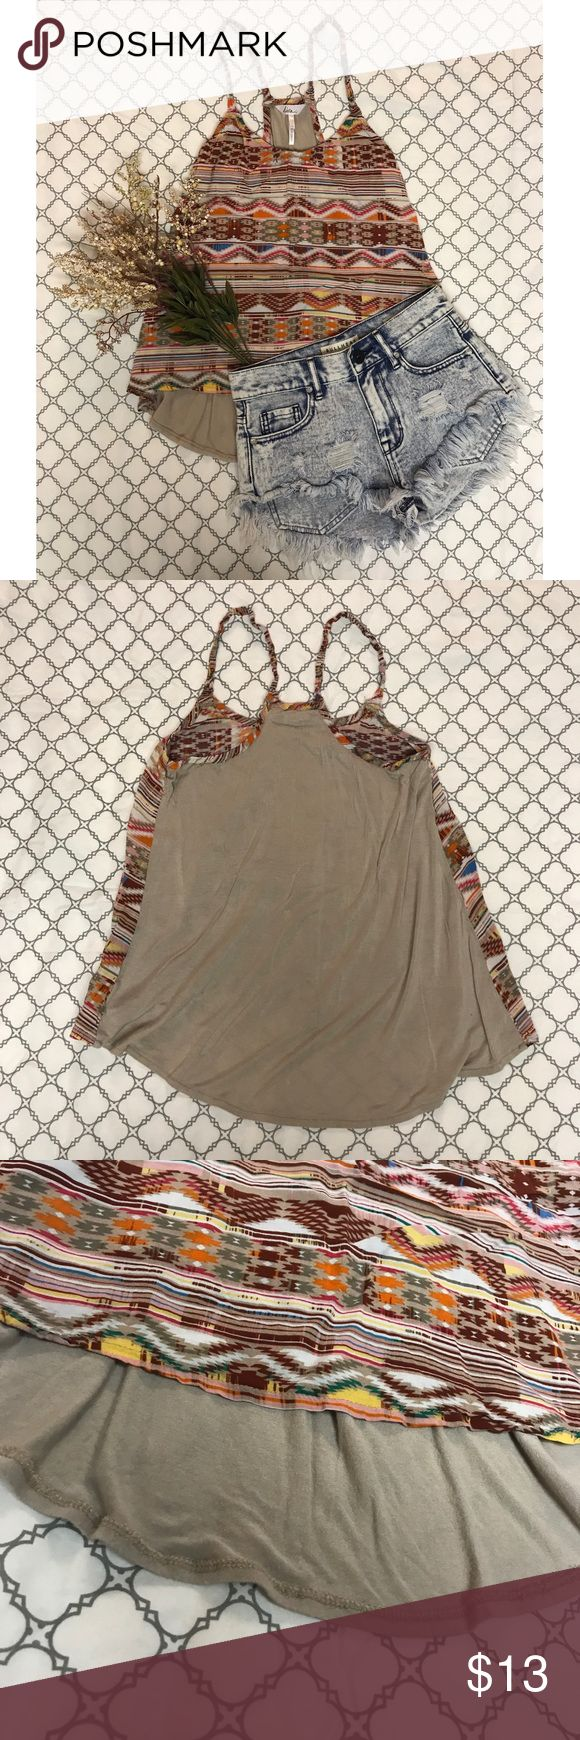 PacSun Tribal Print Tank ✨NWOT, PERFECT CONDITION ✨Material: 100% rayon ✨So so so comfortable! ✨Double straps on the shoulders ✨Front has a tribal print pattern, back is solid tan  ✨Awesome summer top!!! But also great fall colors😊 ✨It would look super cute with jean shorts or jeans and a sweater! PacSun Tops Tank Tops